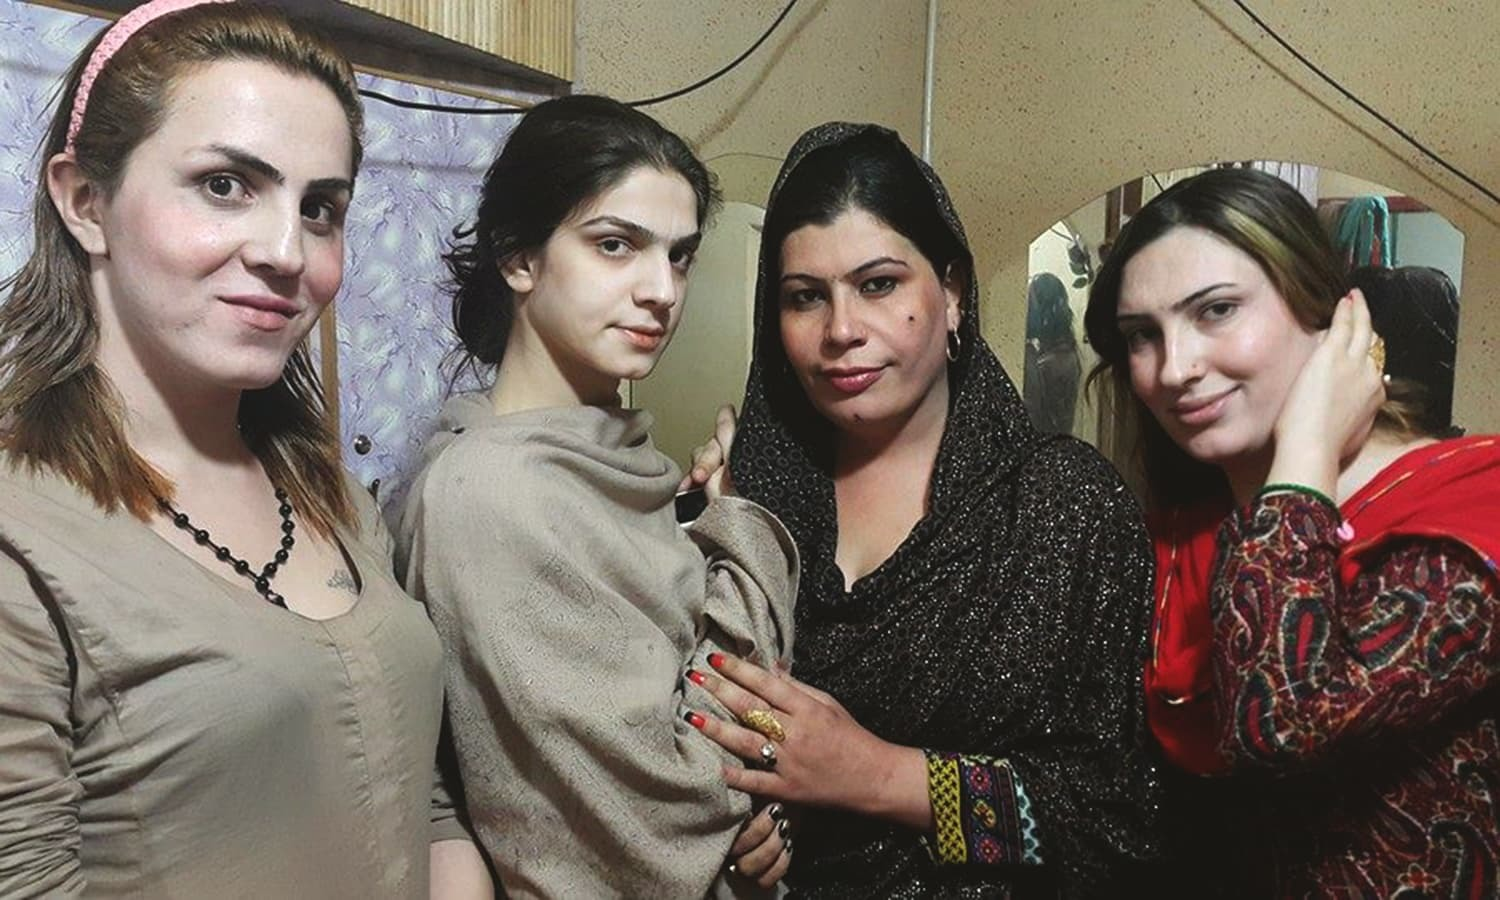 TransAction, Blue Veins demand early approval, enforcement of draft policy for protection of transgender rights in KP. — File